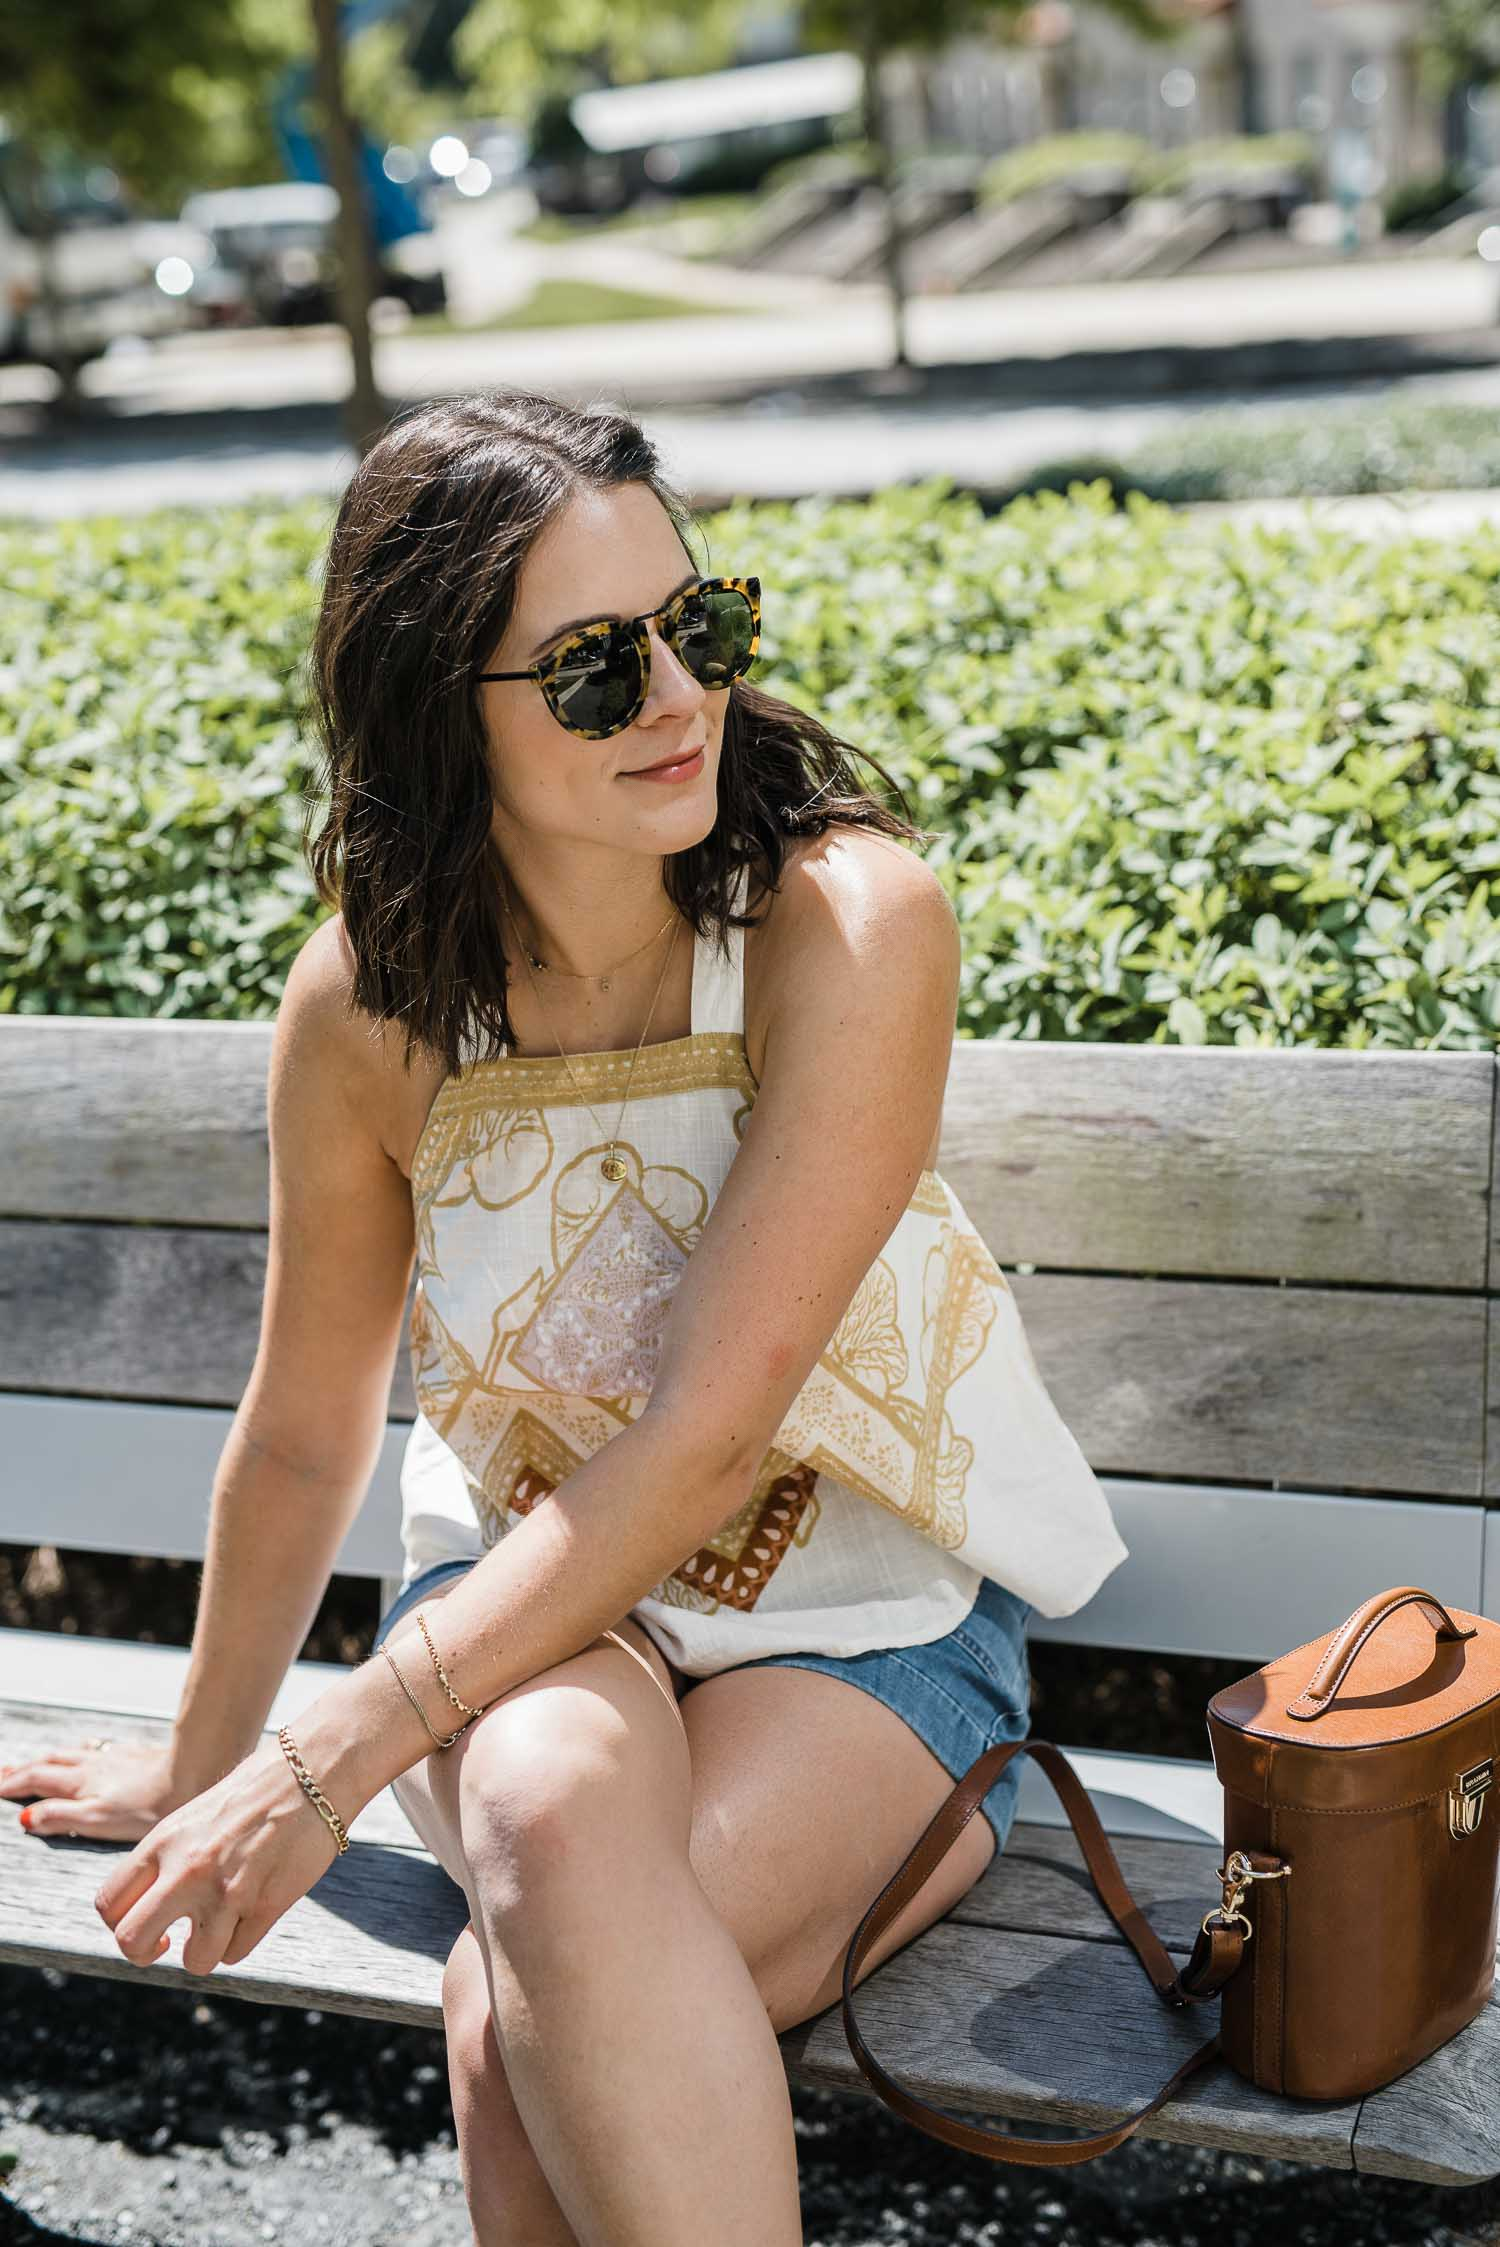 Free People Tops Review on the blog